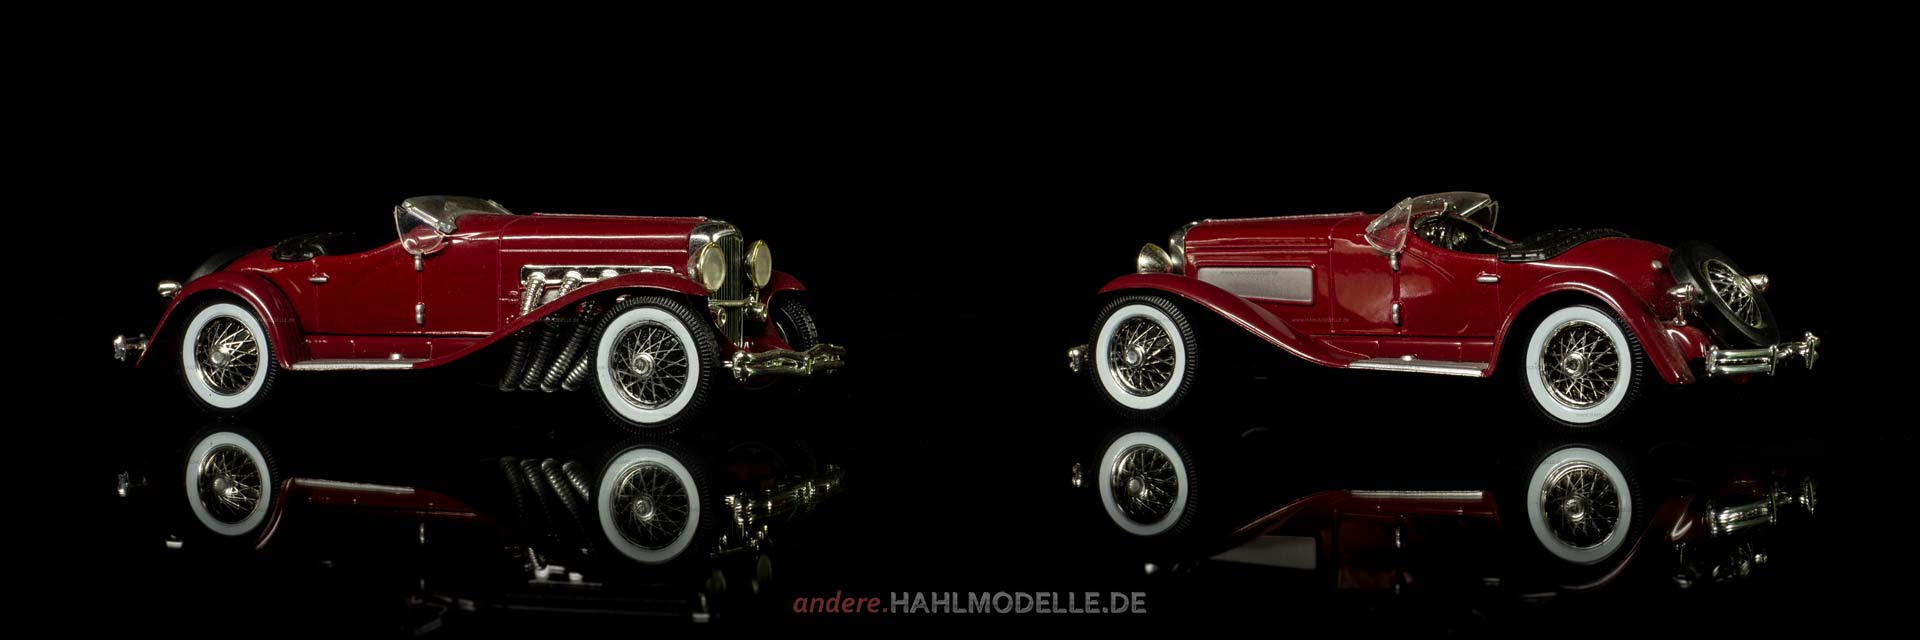 Duesenberg J | Spider | Ixo (Del Prado Car Collection) | 1:43 | www.andere.hahlmodelle.de